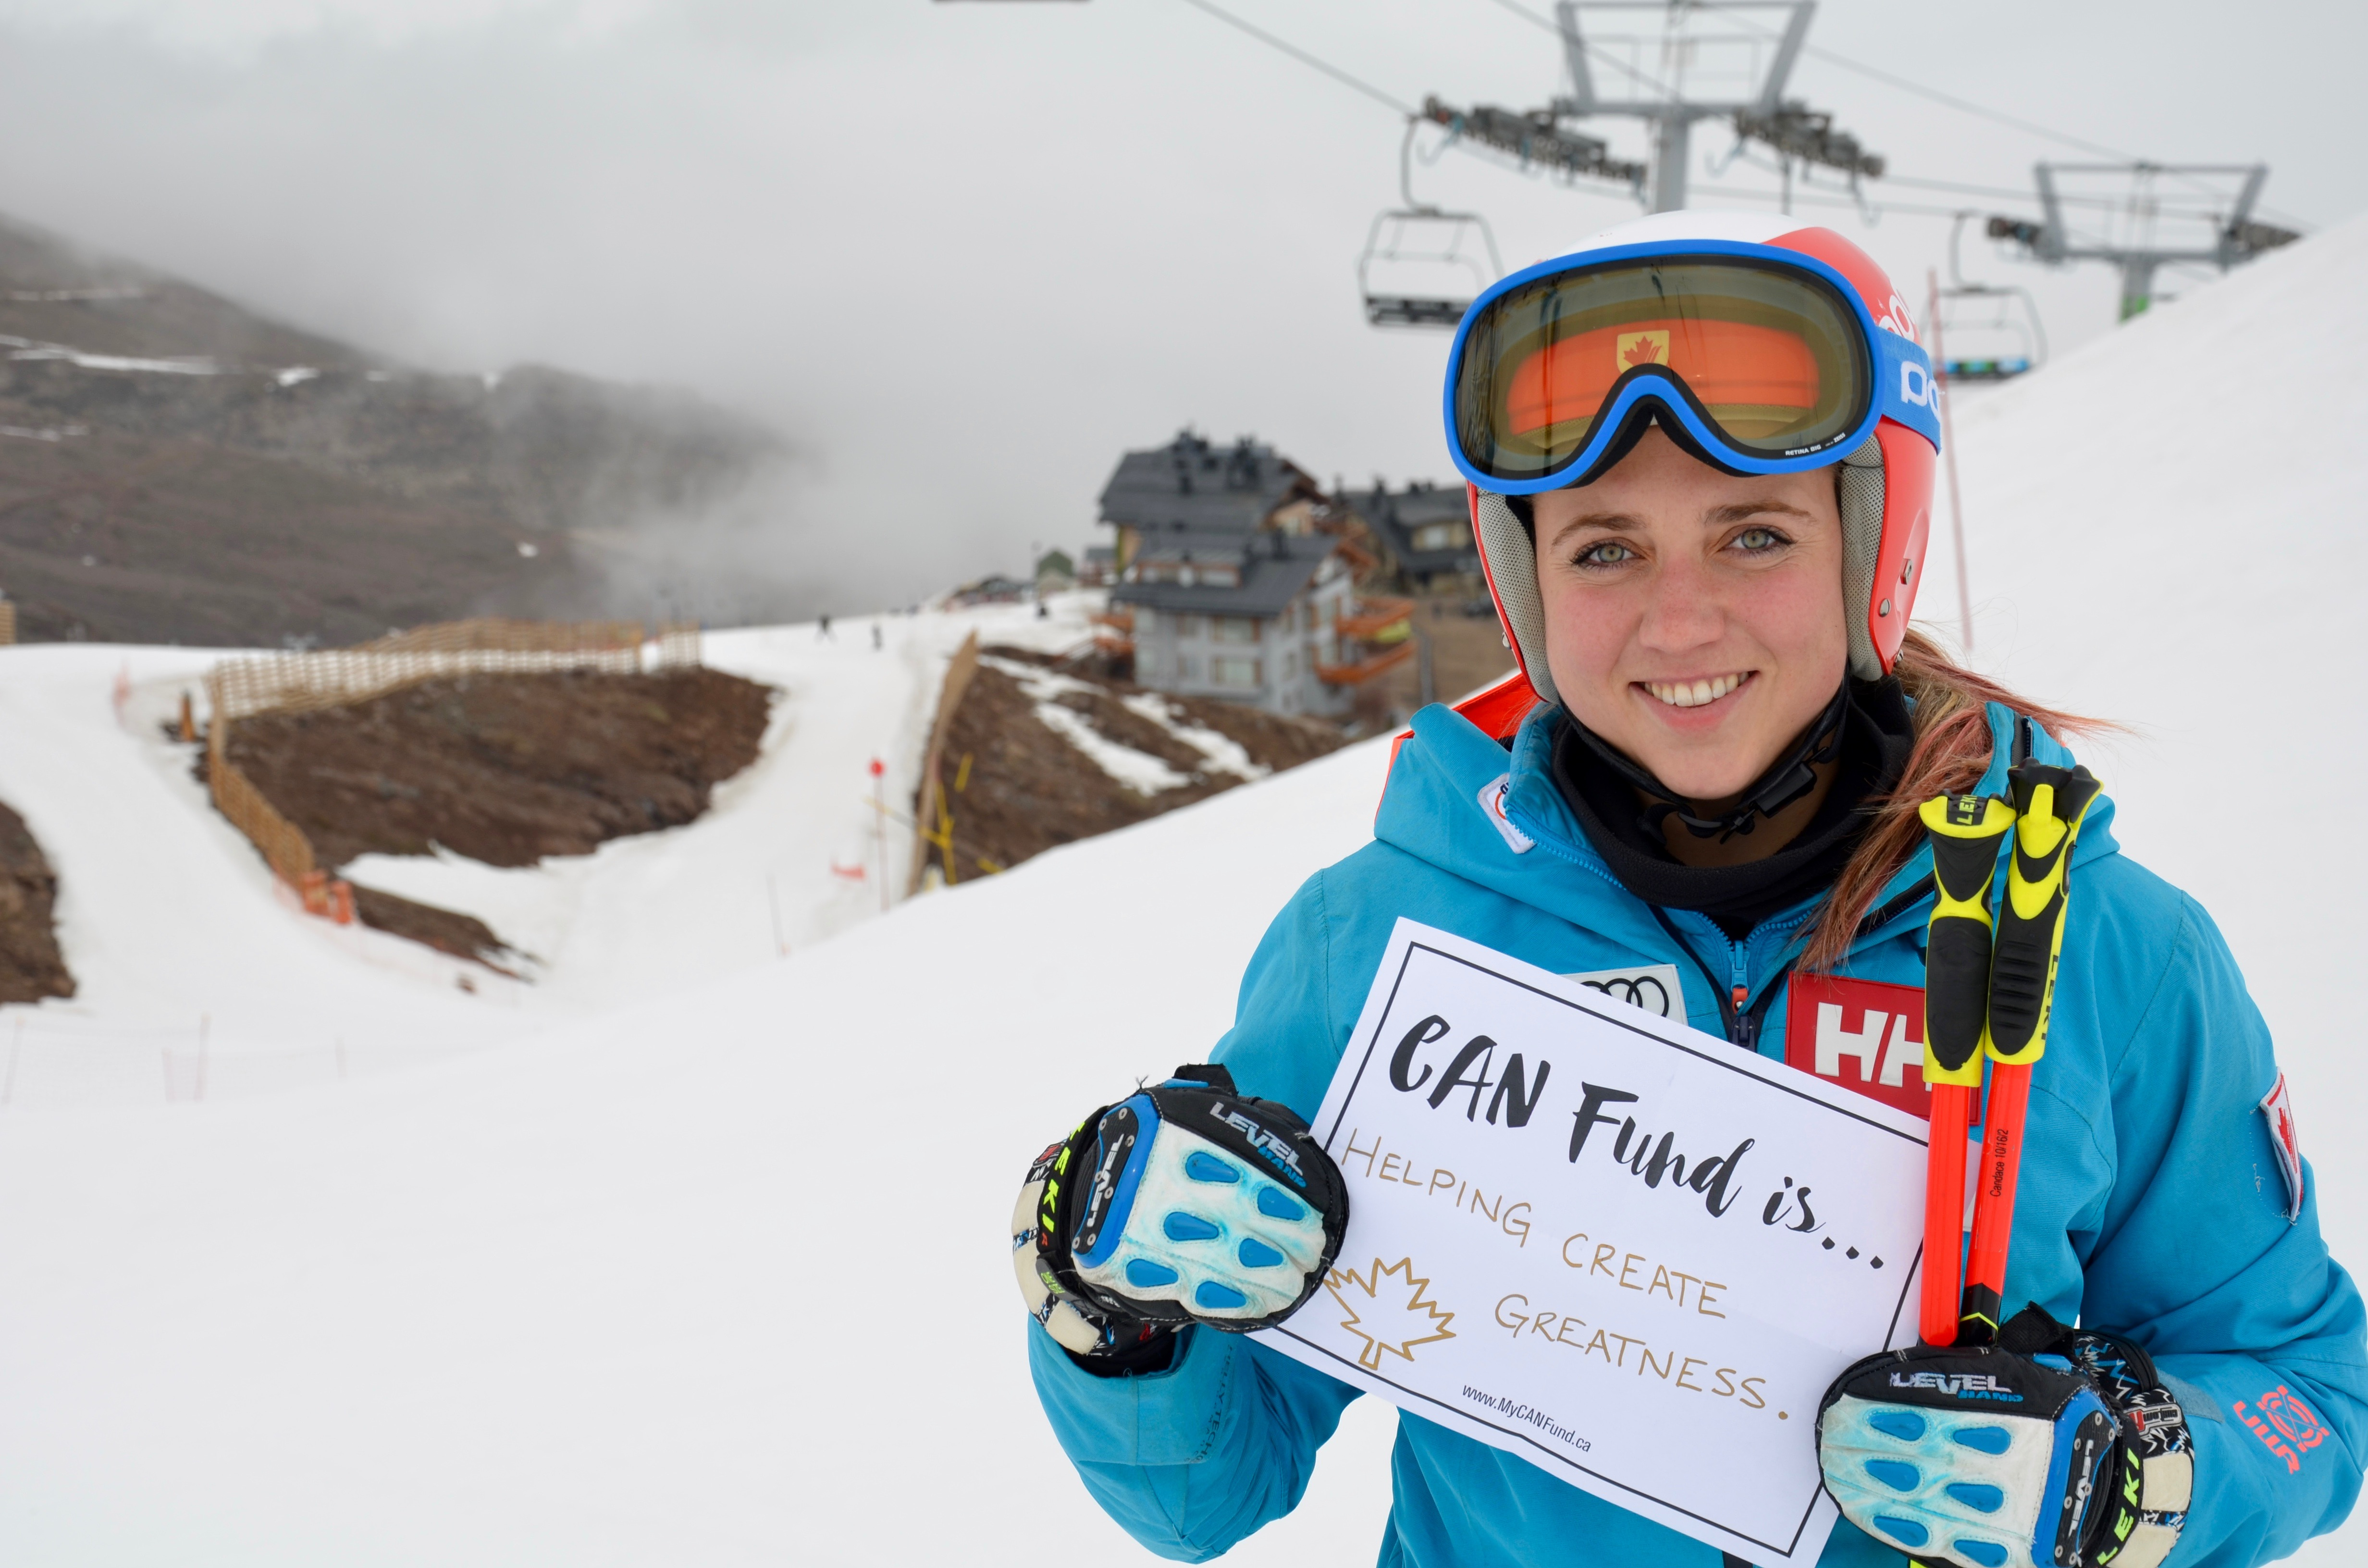 Candace Crawford - Alpine Skiing  - CAN Fund is